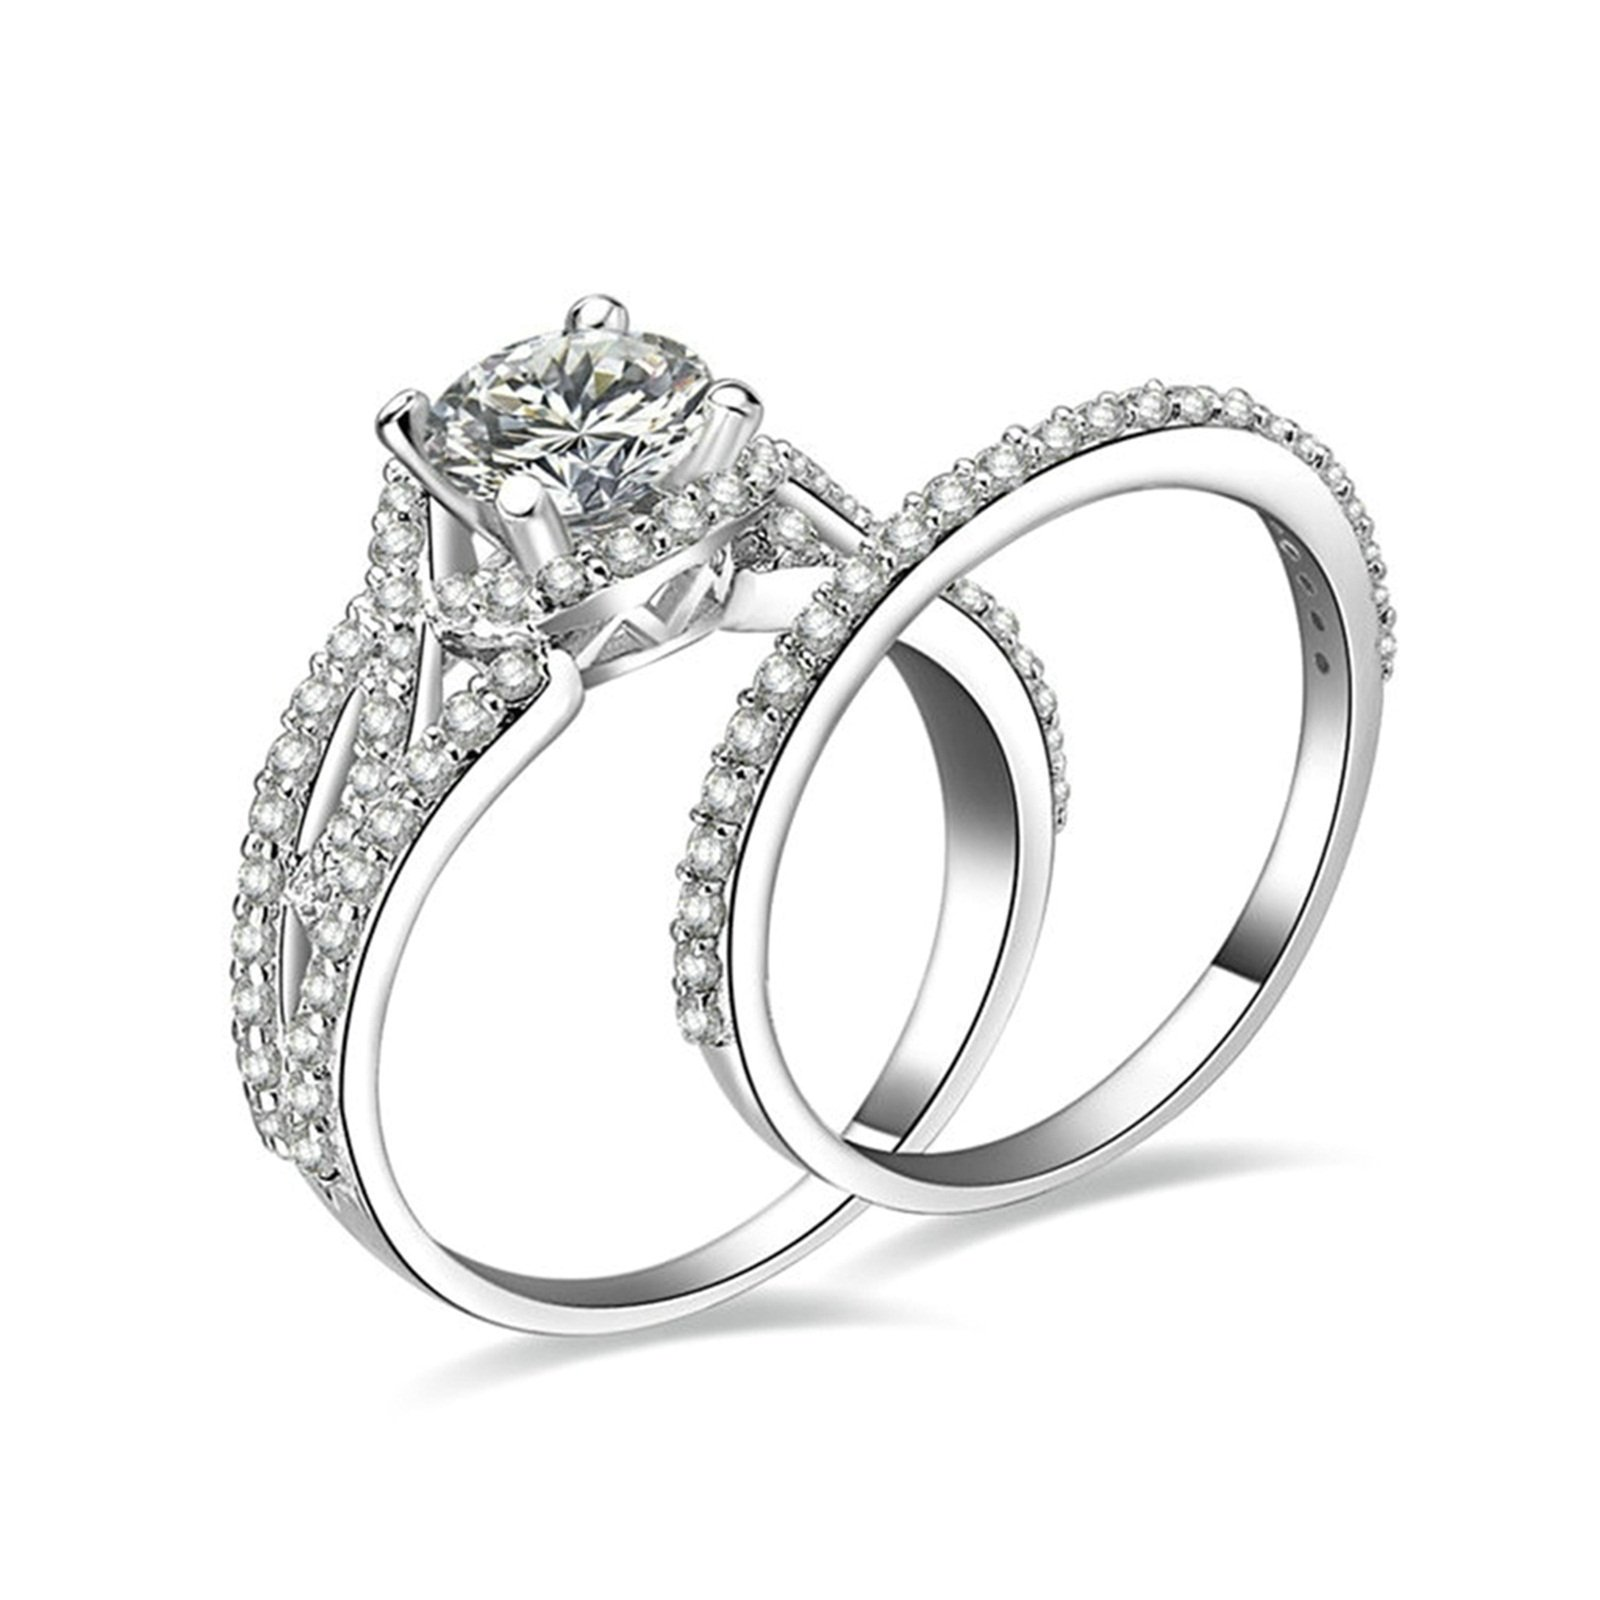 Daesar Engagement Rings Jewelry 4-Prong Setting Round White Cubic Zirconia Ring Set Ring Size 8